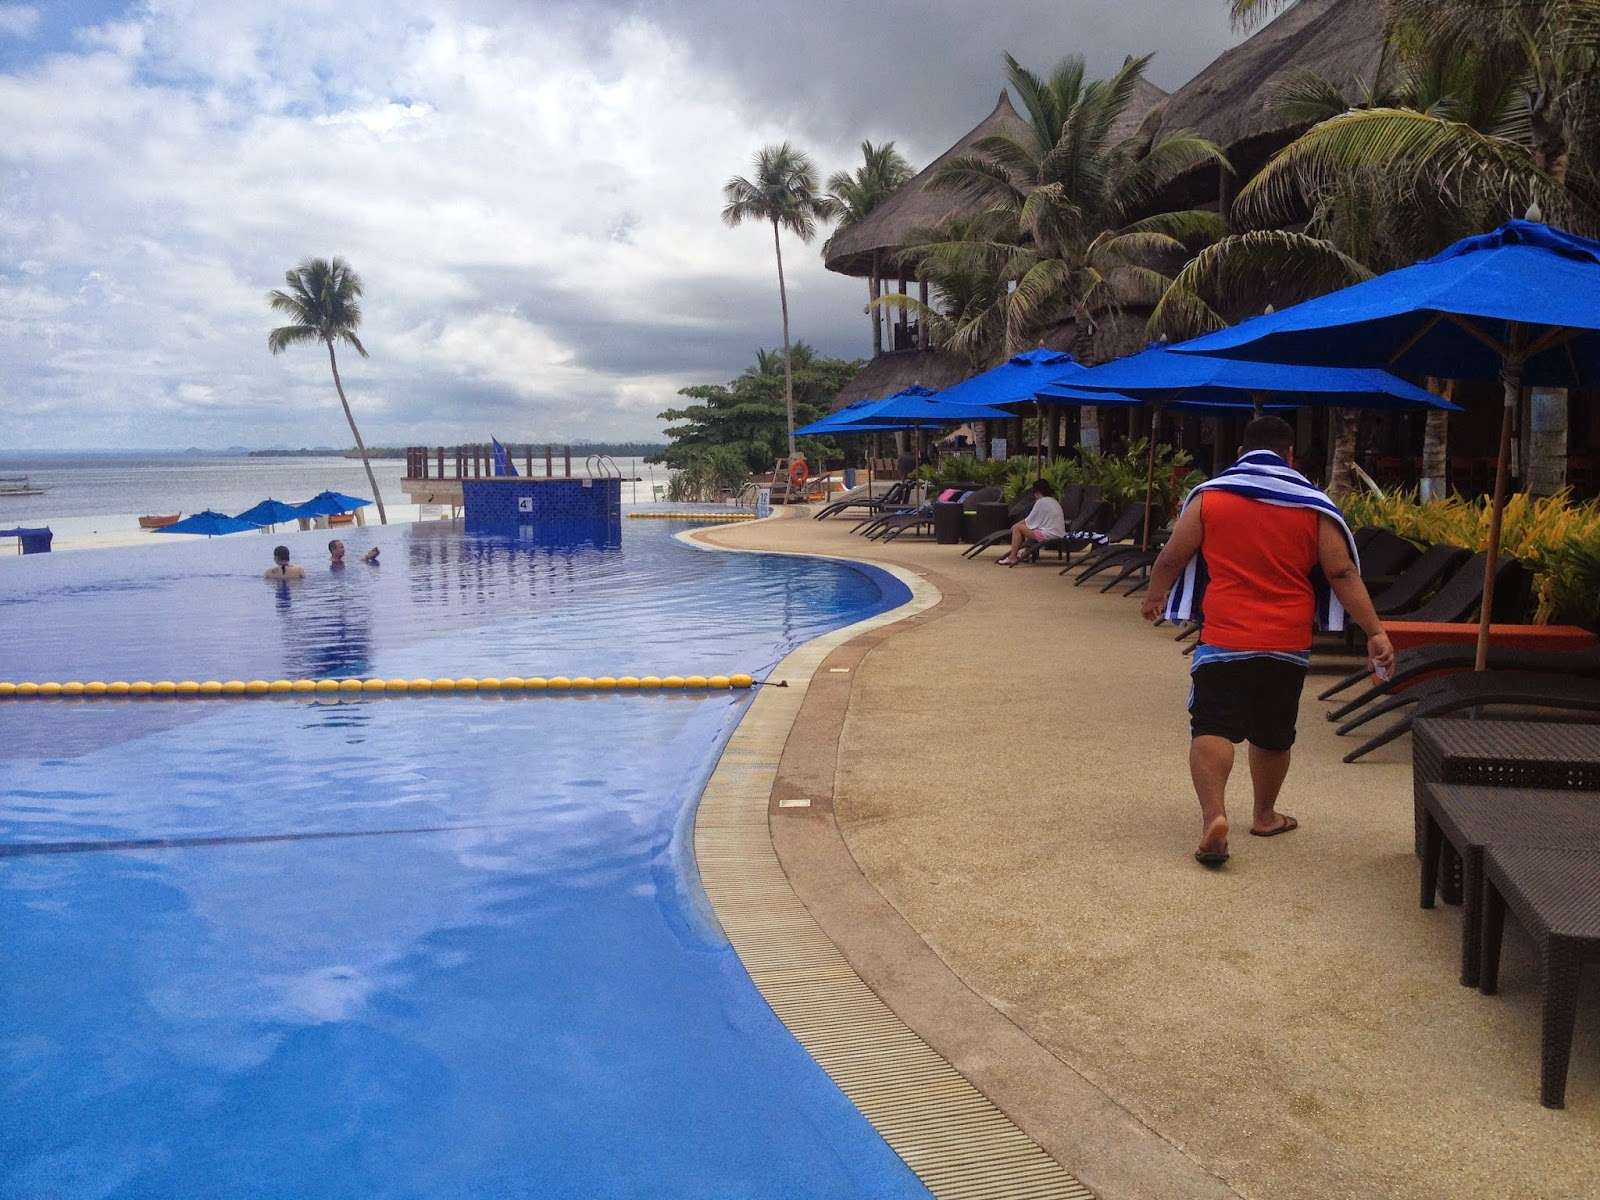 Bellevue Resort and Hotel in Panglao, Bohol, Philippines.